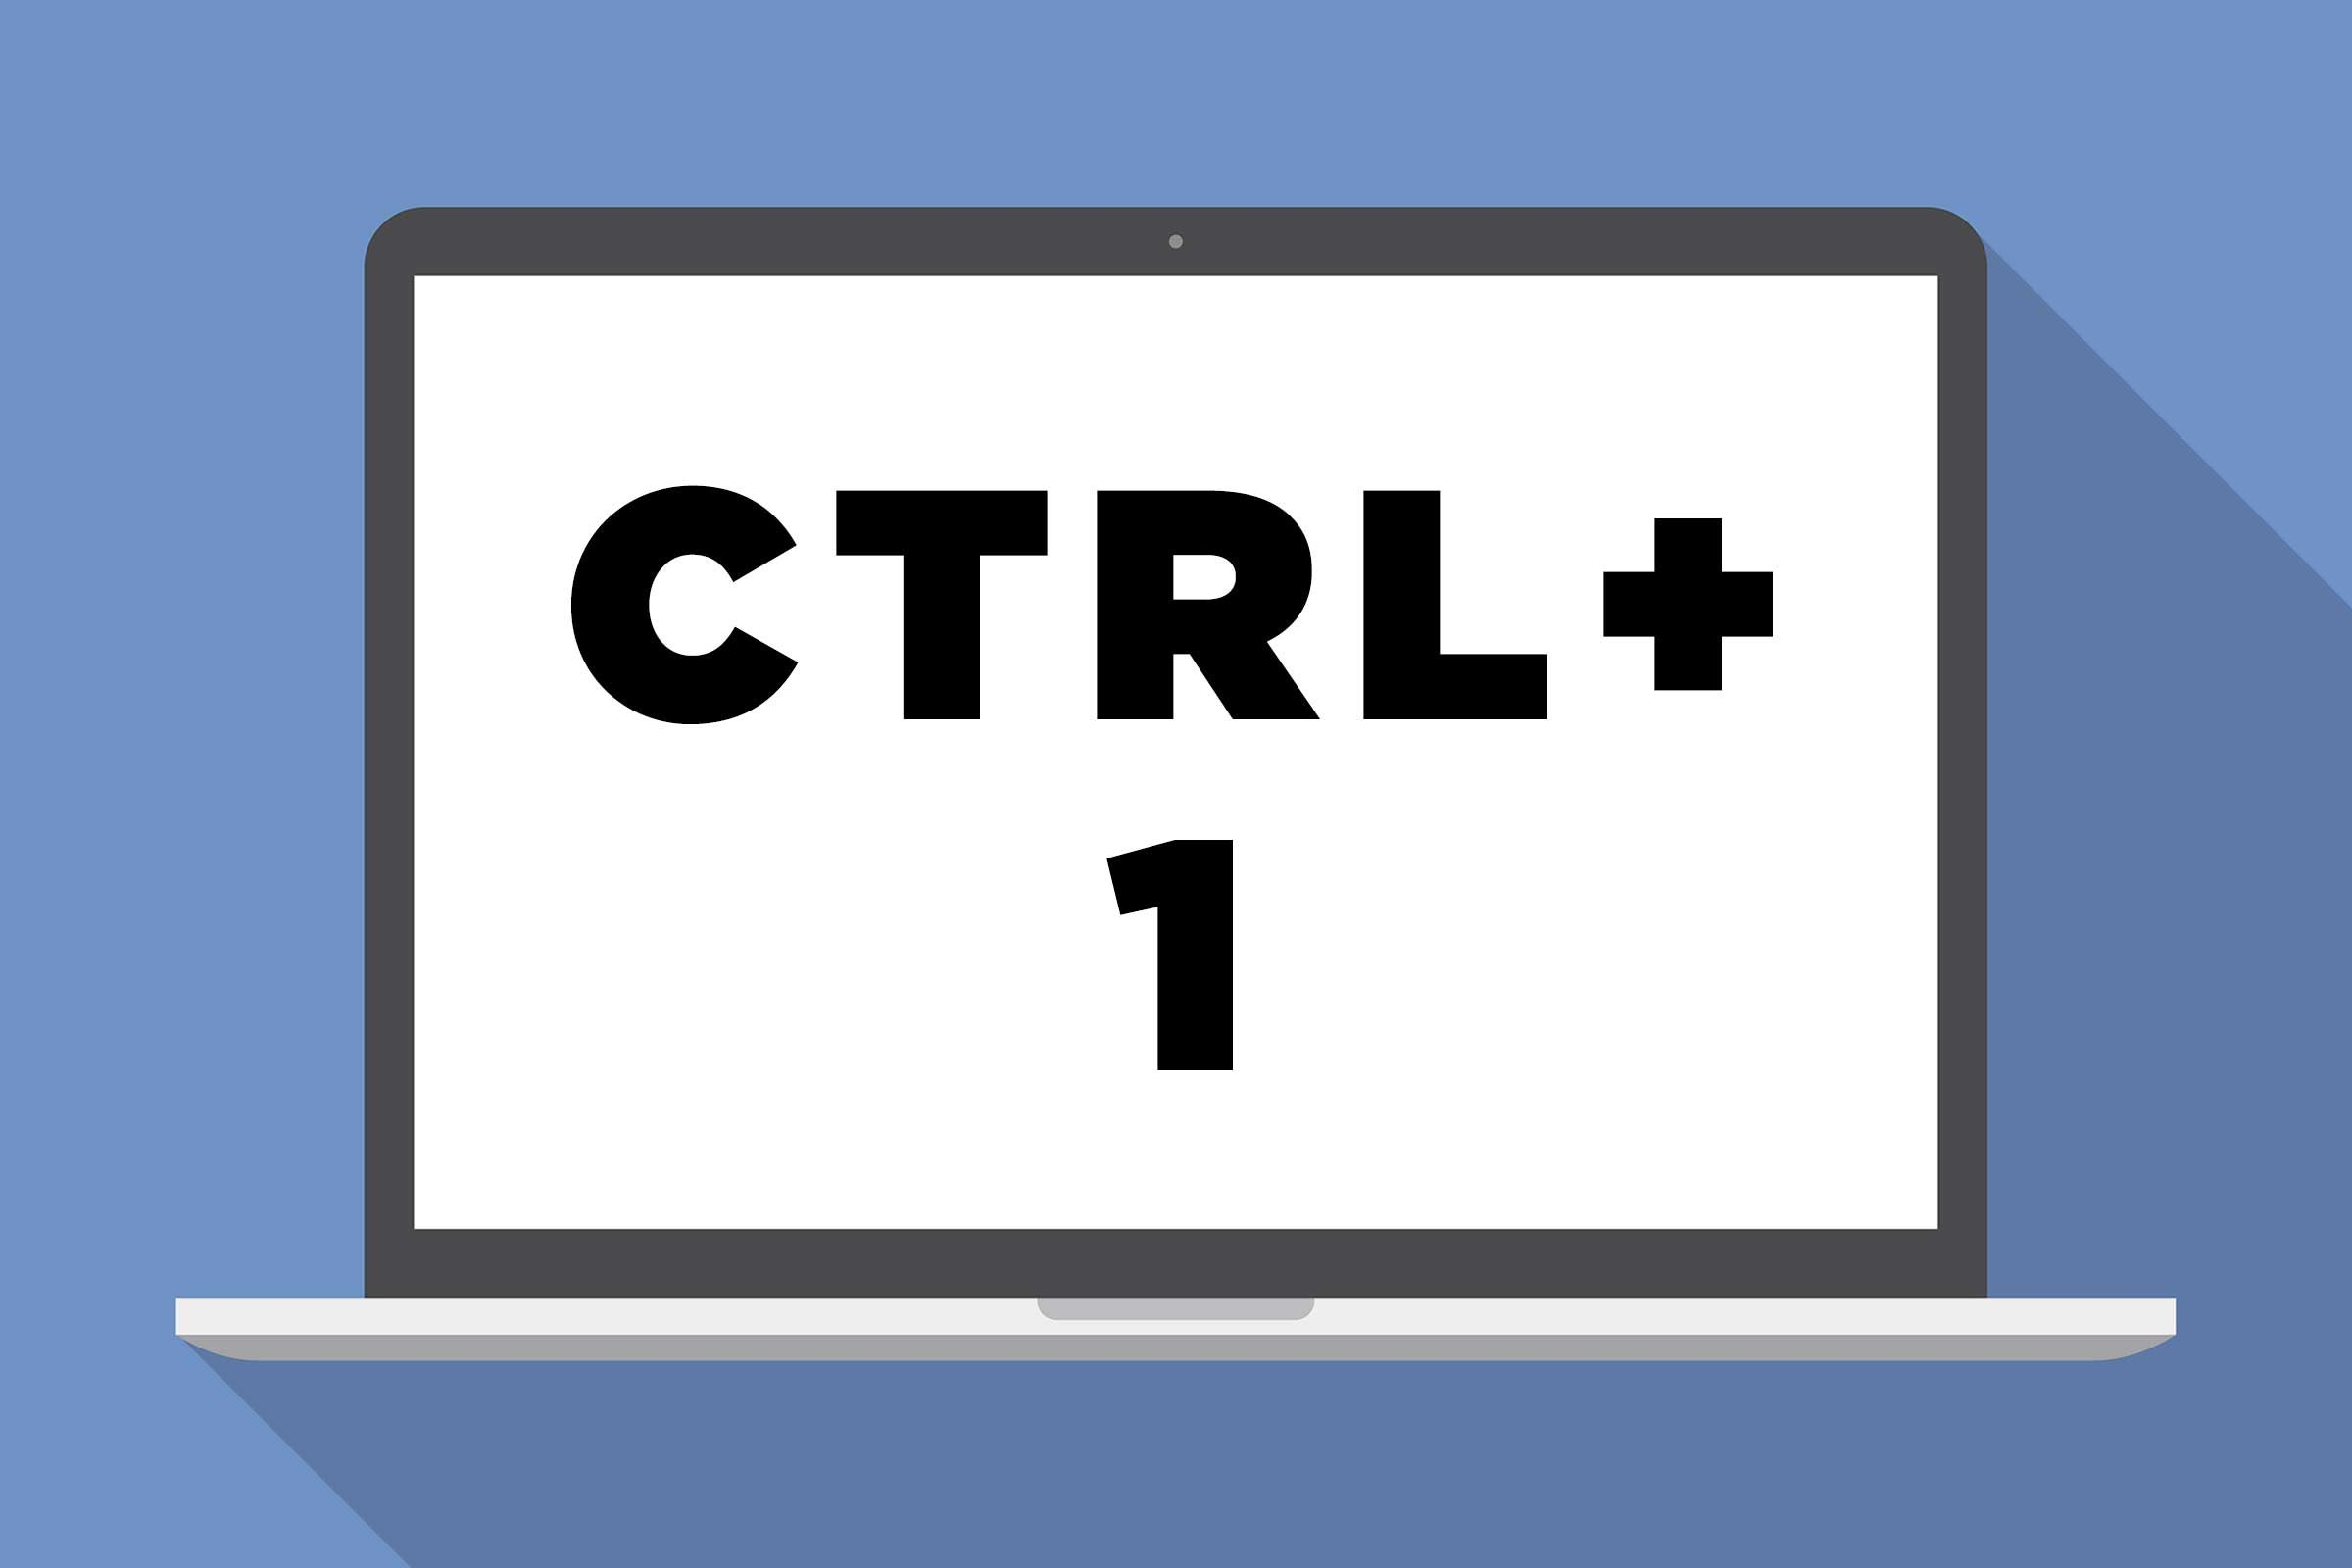 CTRL + 1: Switch to the first tab